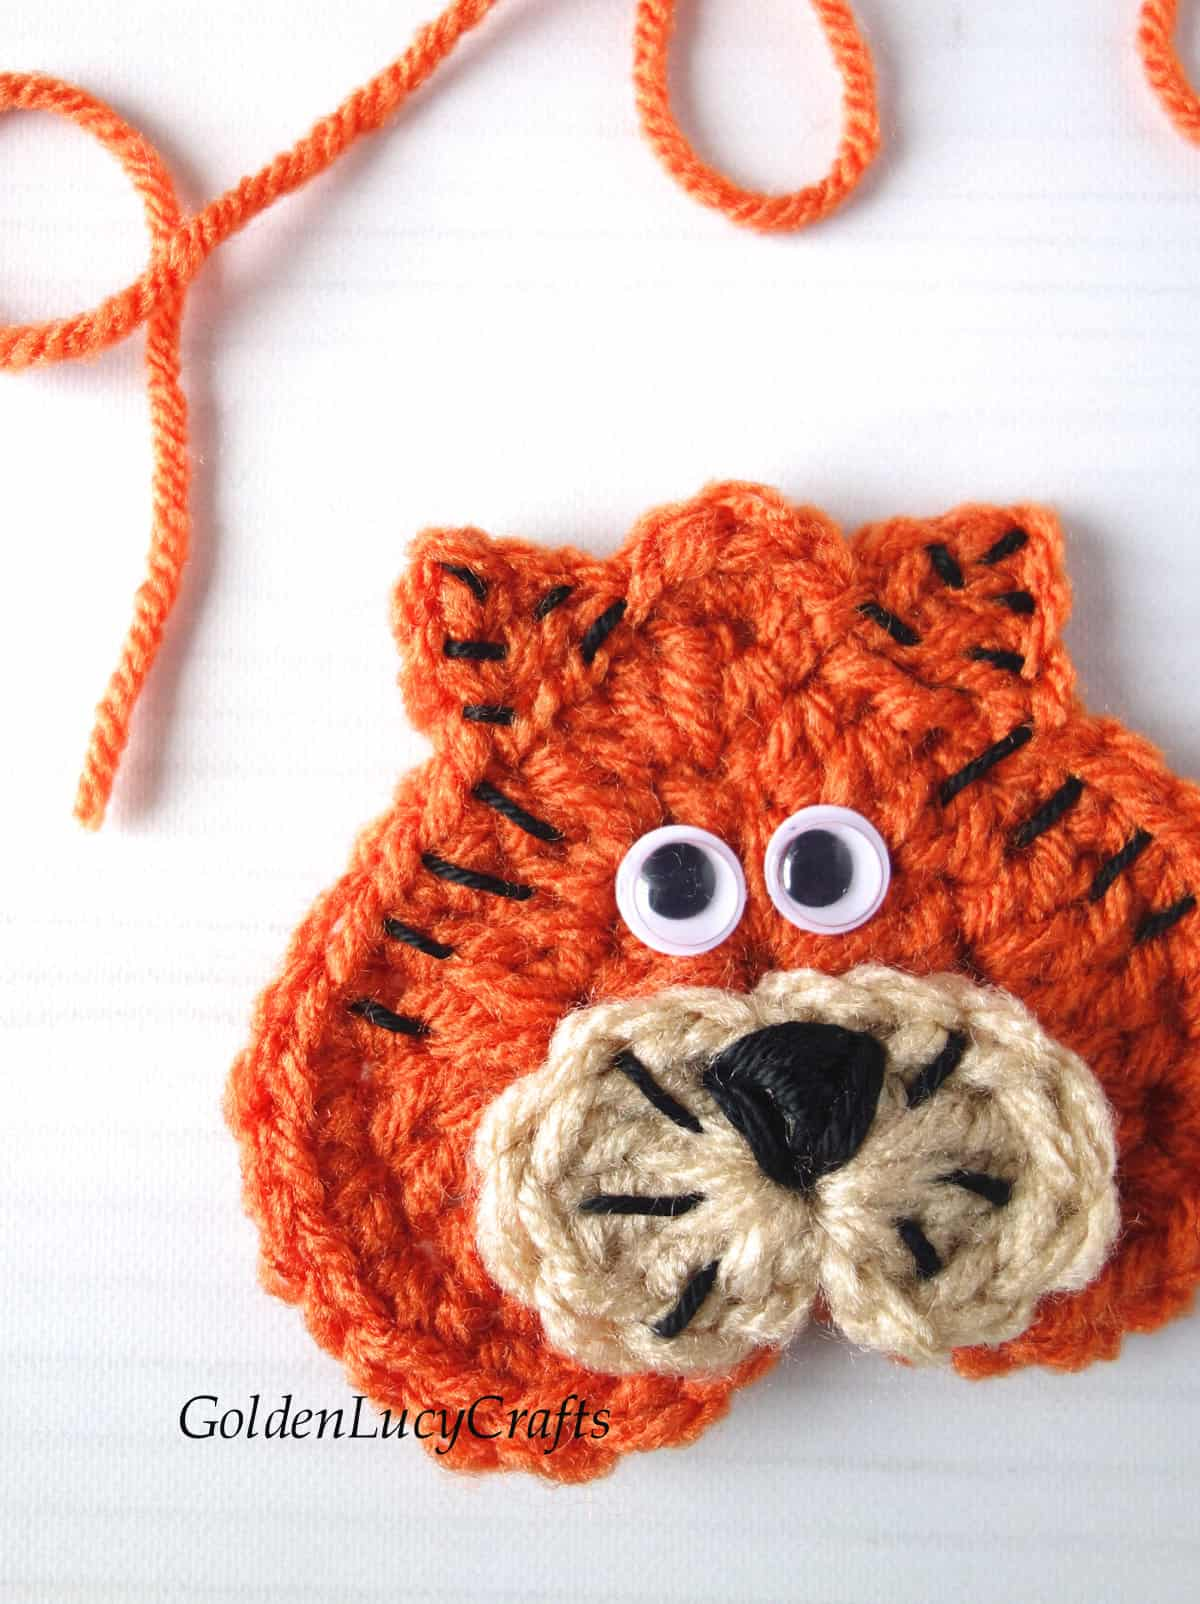 Crocheted Tiger applique close up image.